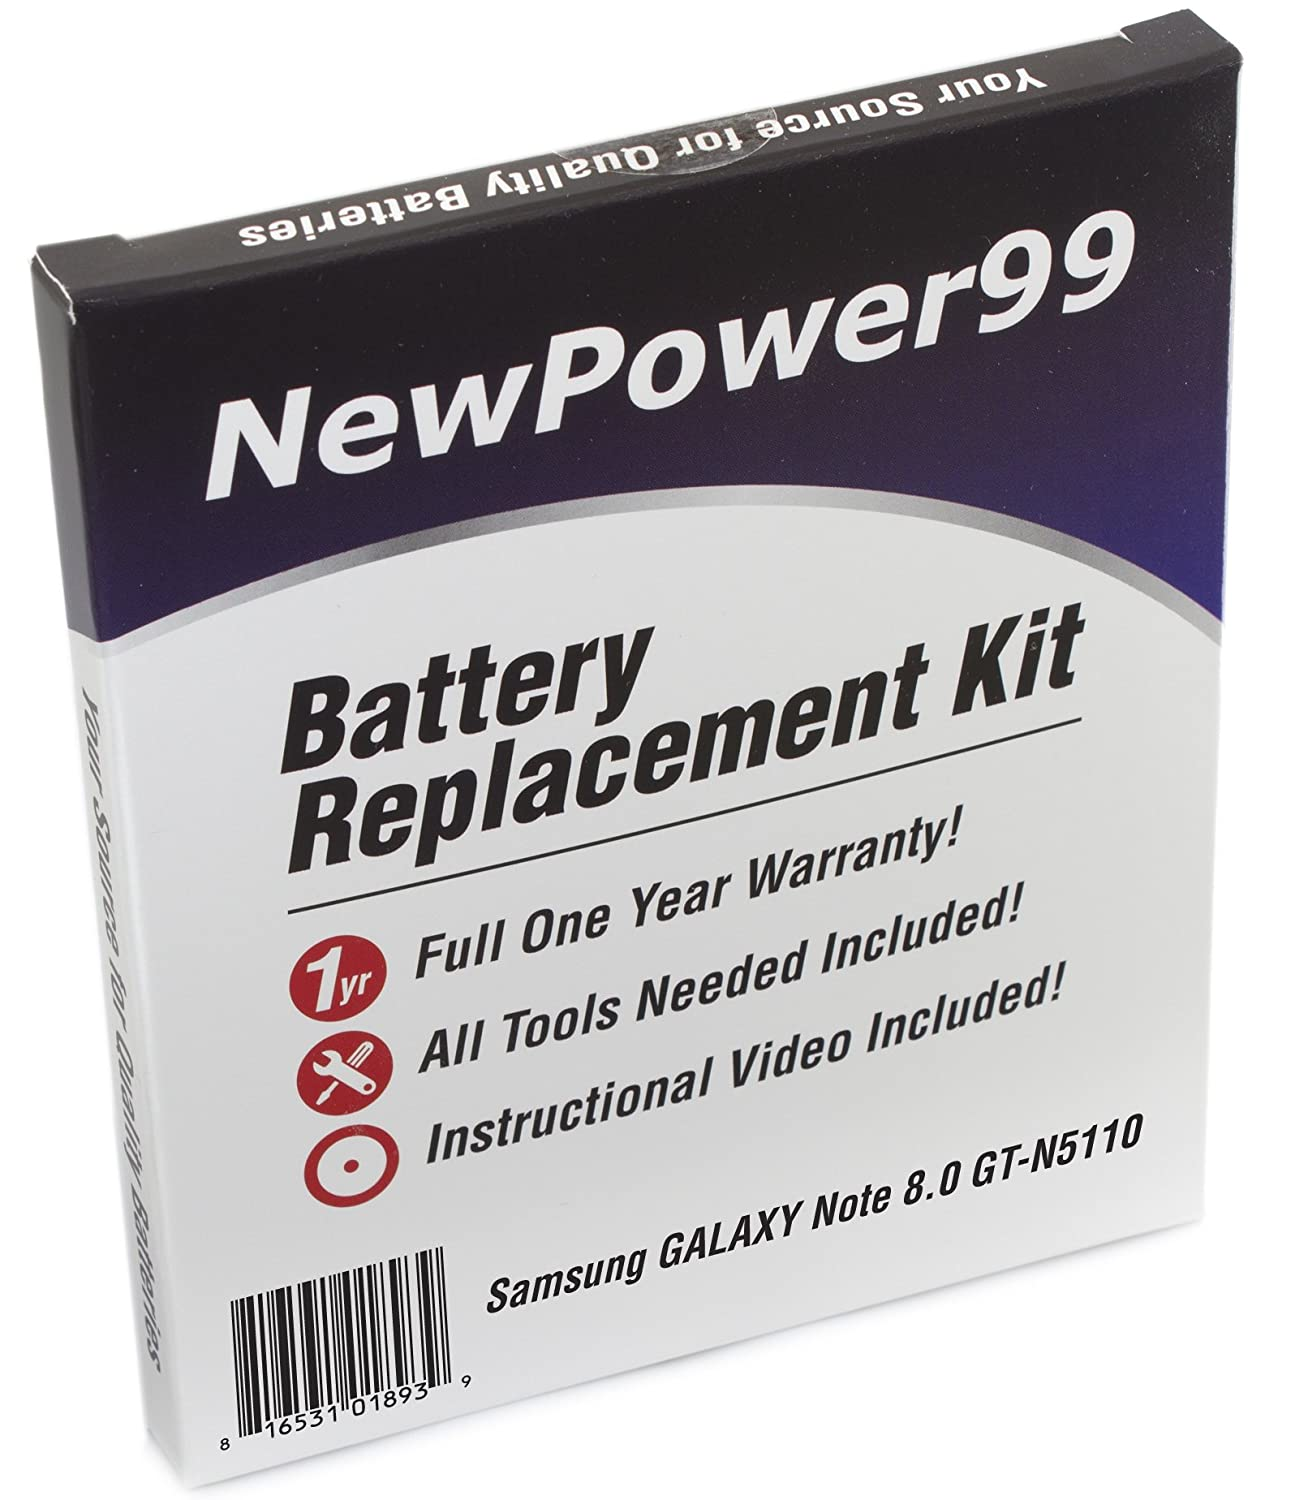 Newpower99 Samsung Galaxy Note 80 Gt N5110 Battery Go Back Gallery For Automotive Electrical Circuit Symbols Replacement Kit With Video Installation Dvd Tools And Extended Life